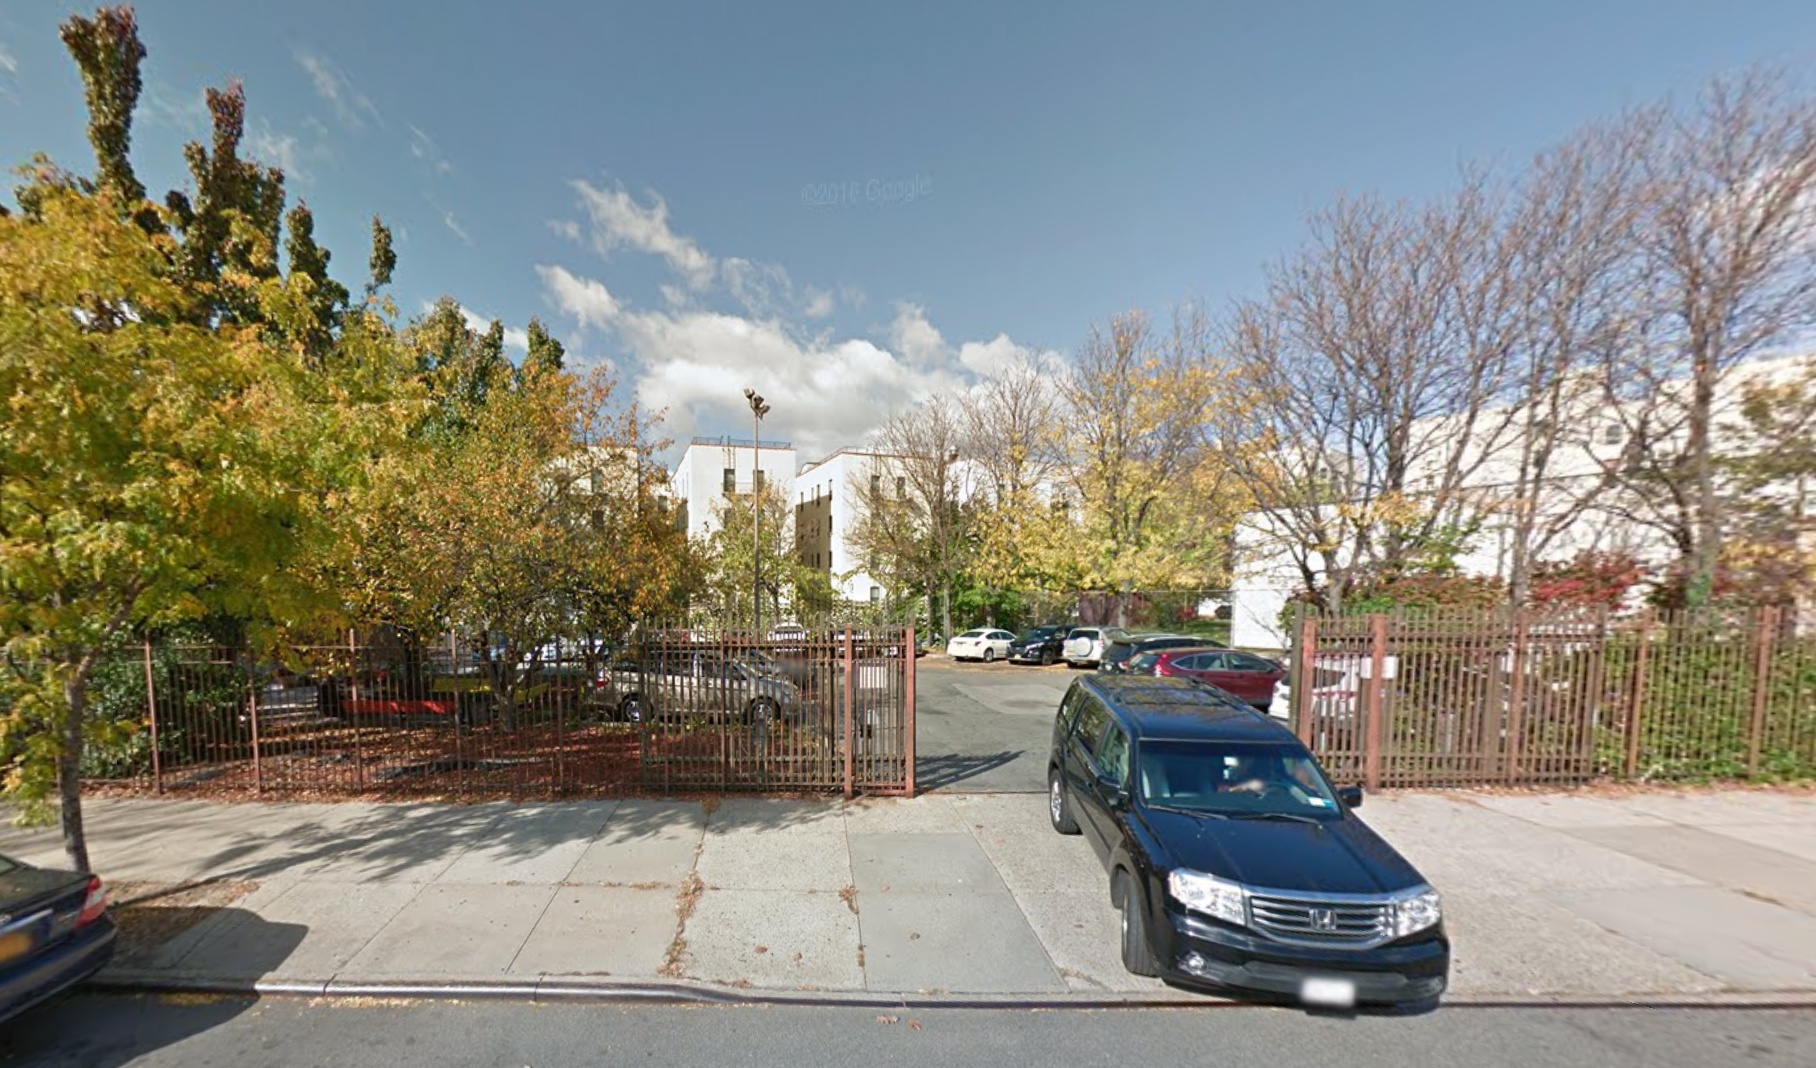 909 Beck Street, image via Google Maps